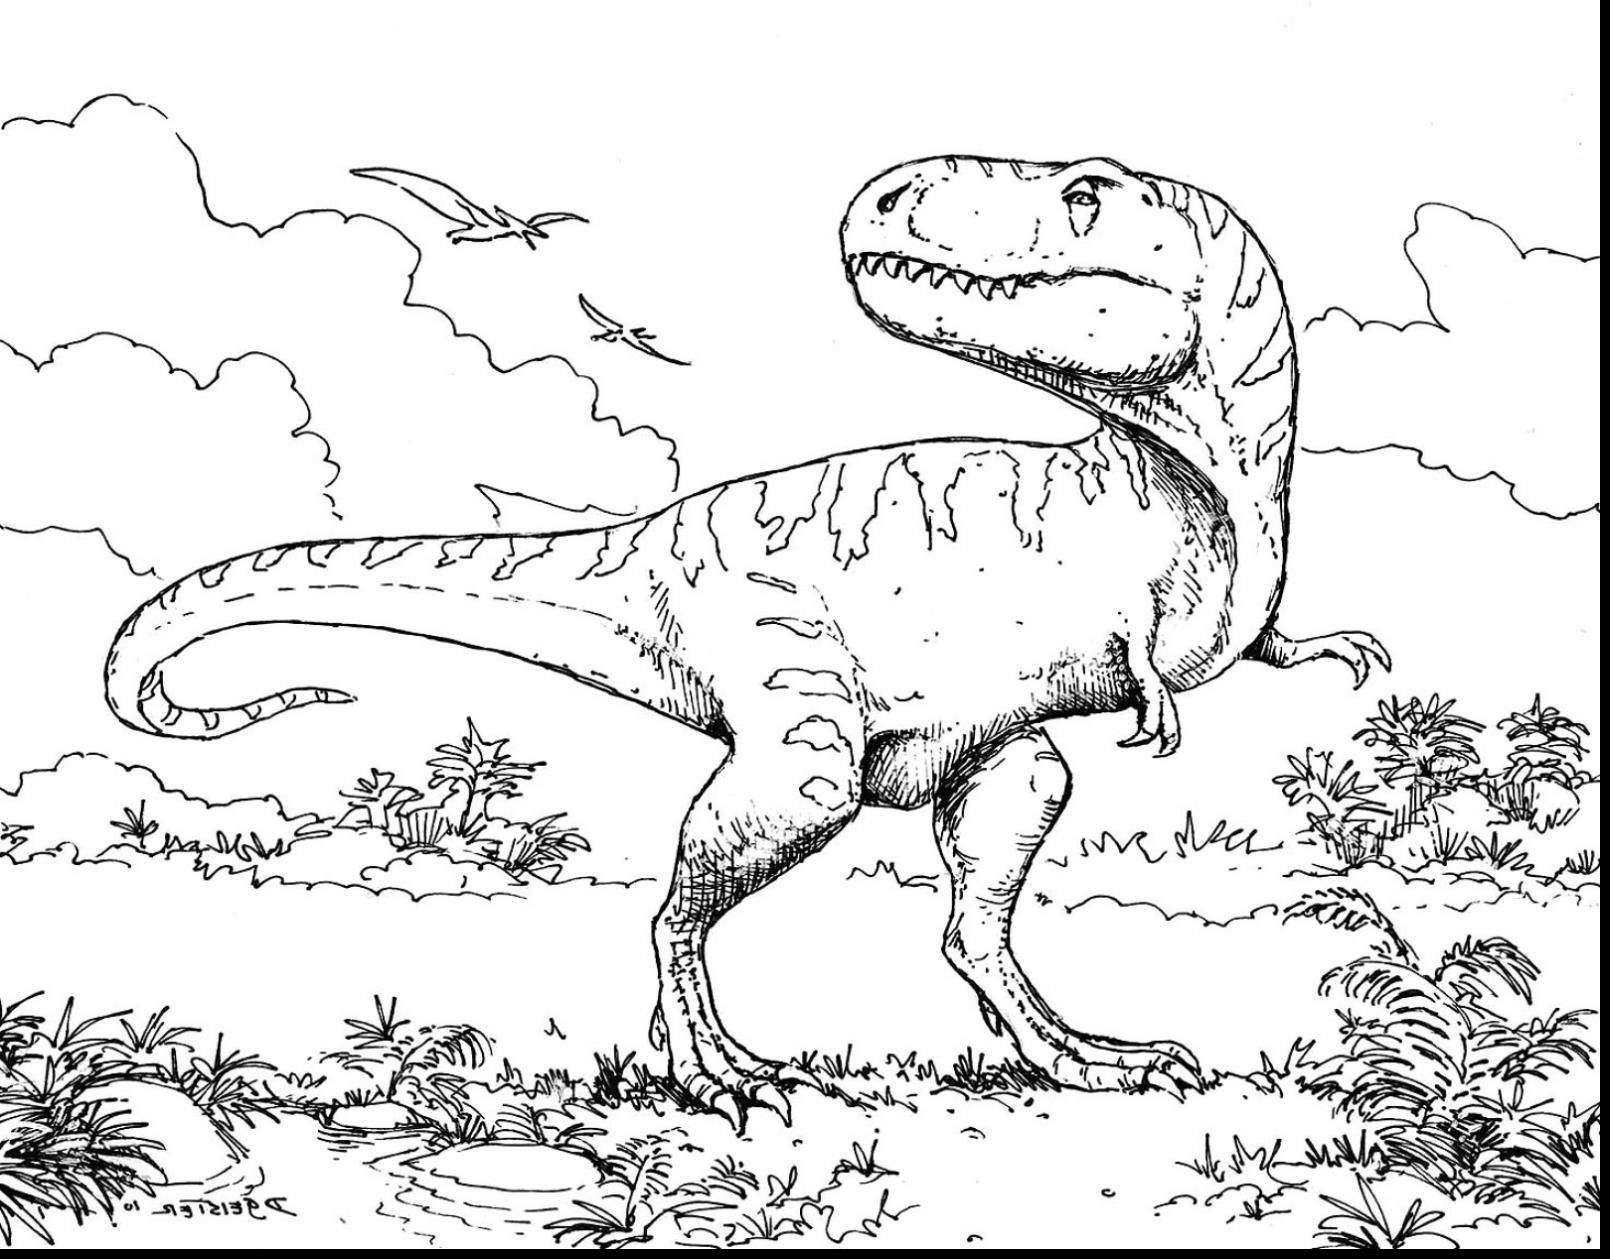 T Rex Coloring Page, T Rex Coloring Pages For Preschoolers